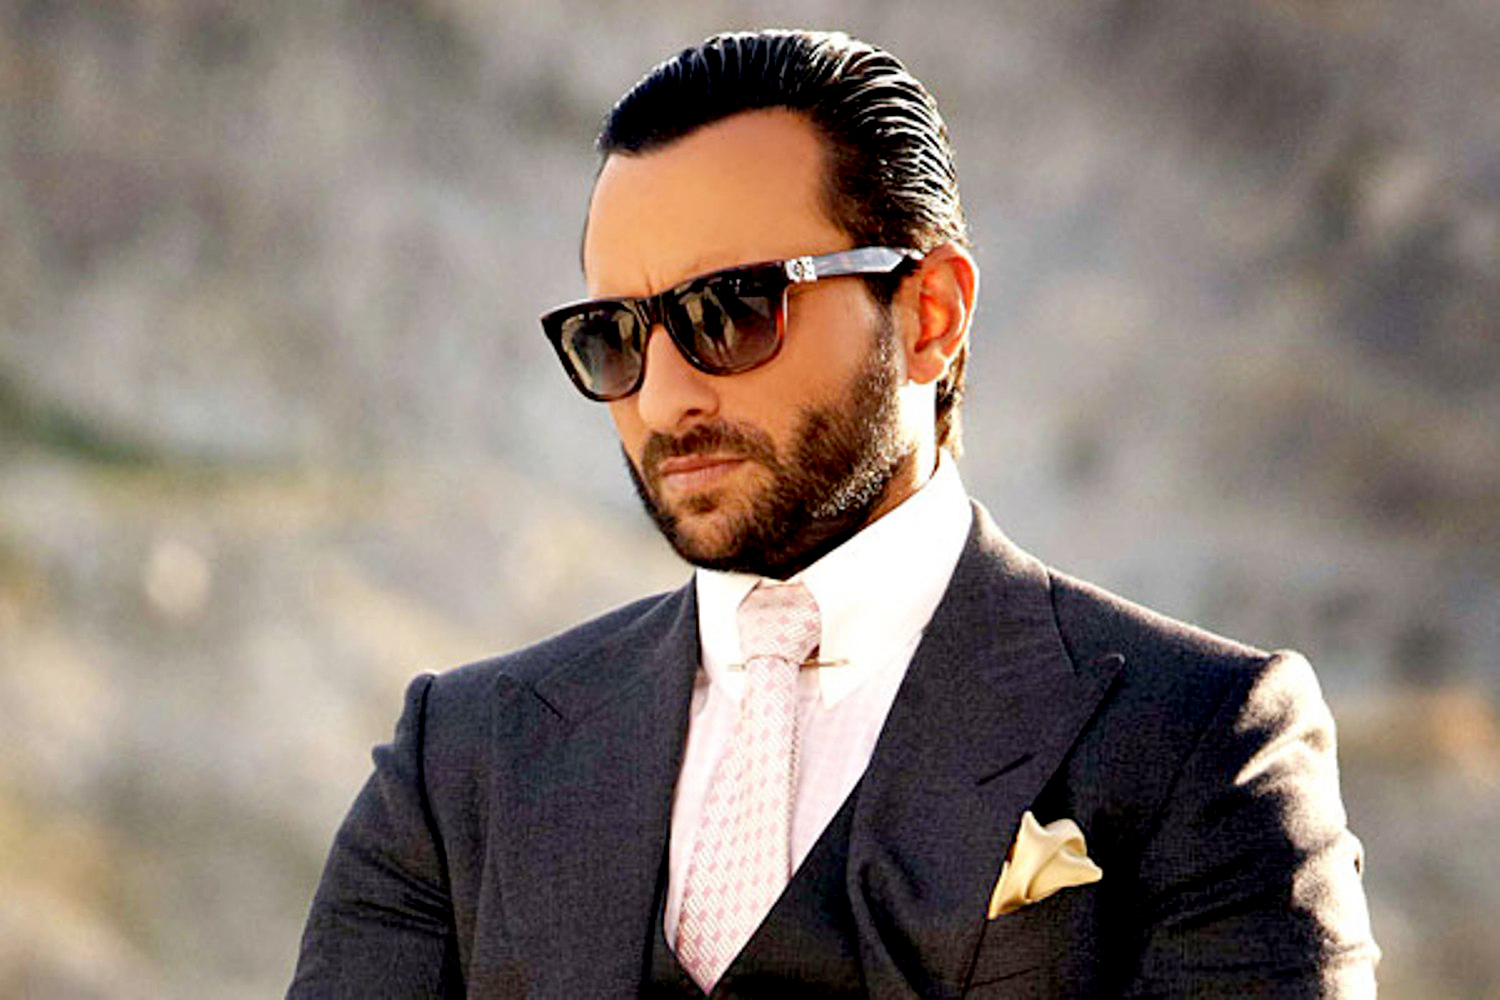 Saif Ali Khan Wallpaper: The Royal Families Of Bollywood